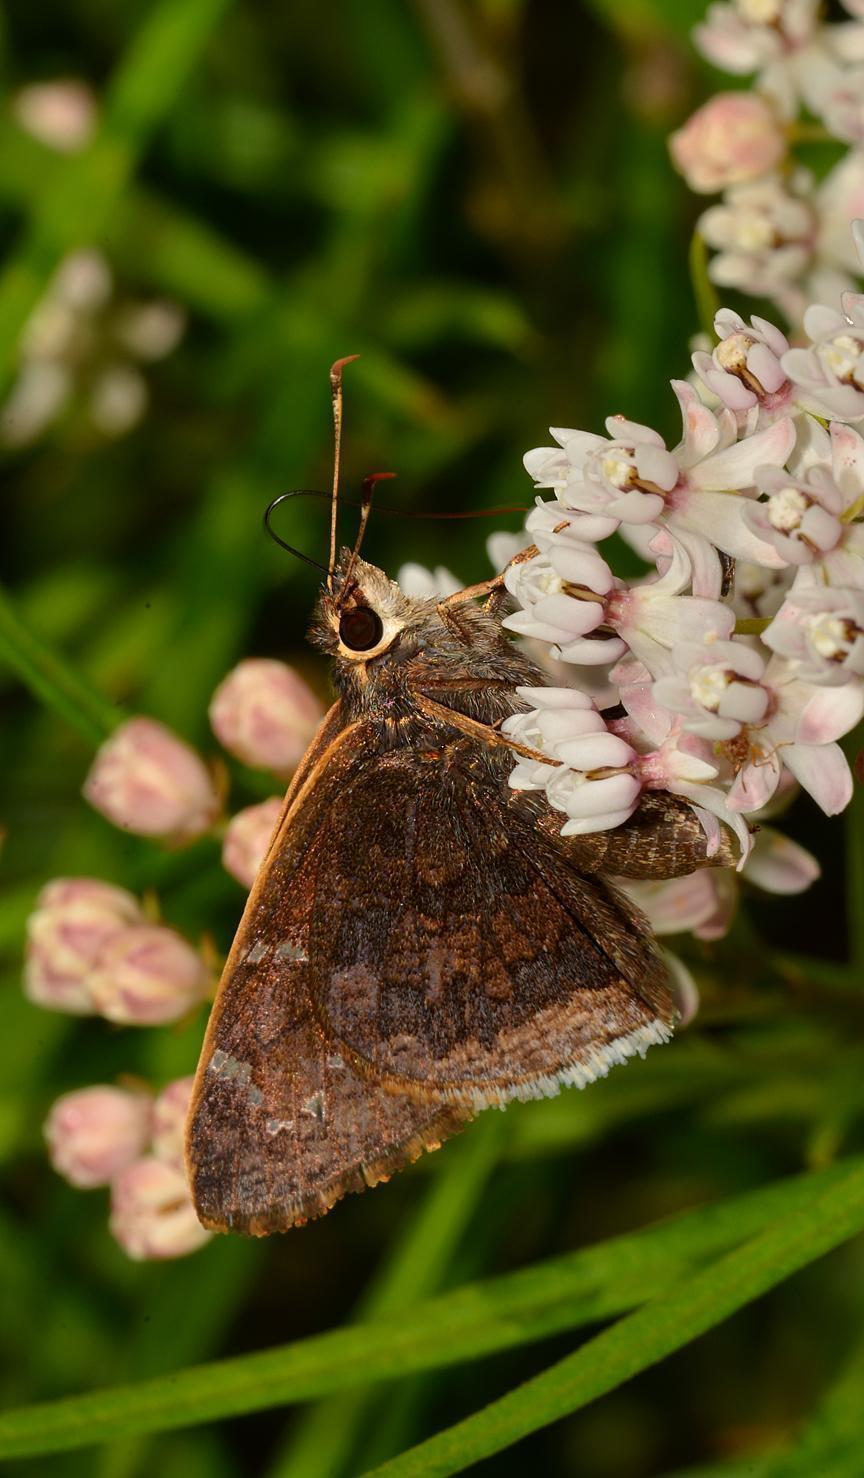 Caicus Skipper Photo by Robert Behrstock